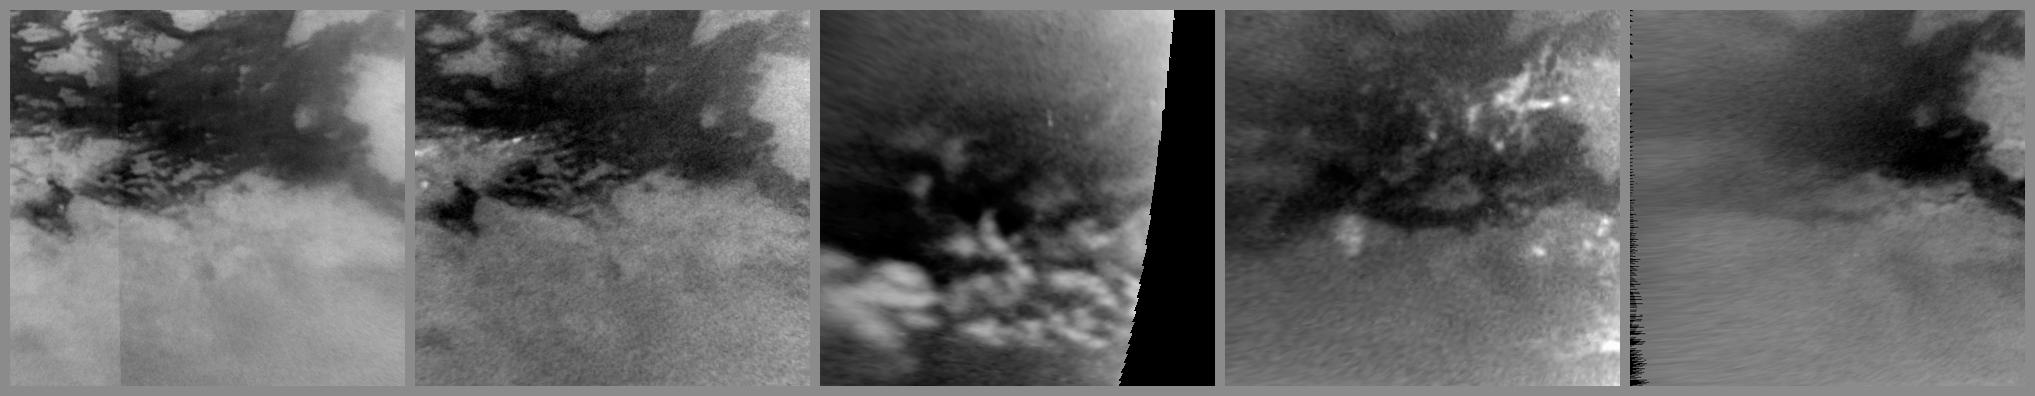 This series of images from NASA's Cassini spacecraft shows changes on the surface of Saturn's moon Titan, as the transition to northern spring brings methane rains to the moon's equatorial latitudes. Some of the most significant changes appear within a period of only a couple of weeks.